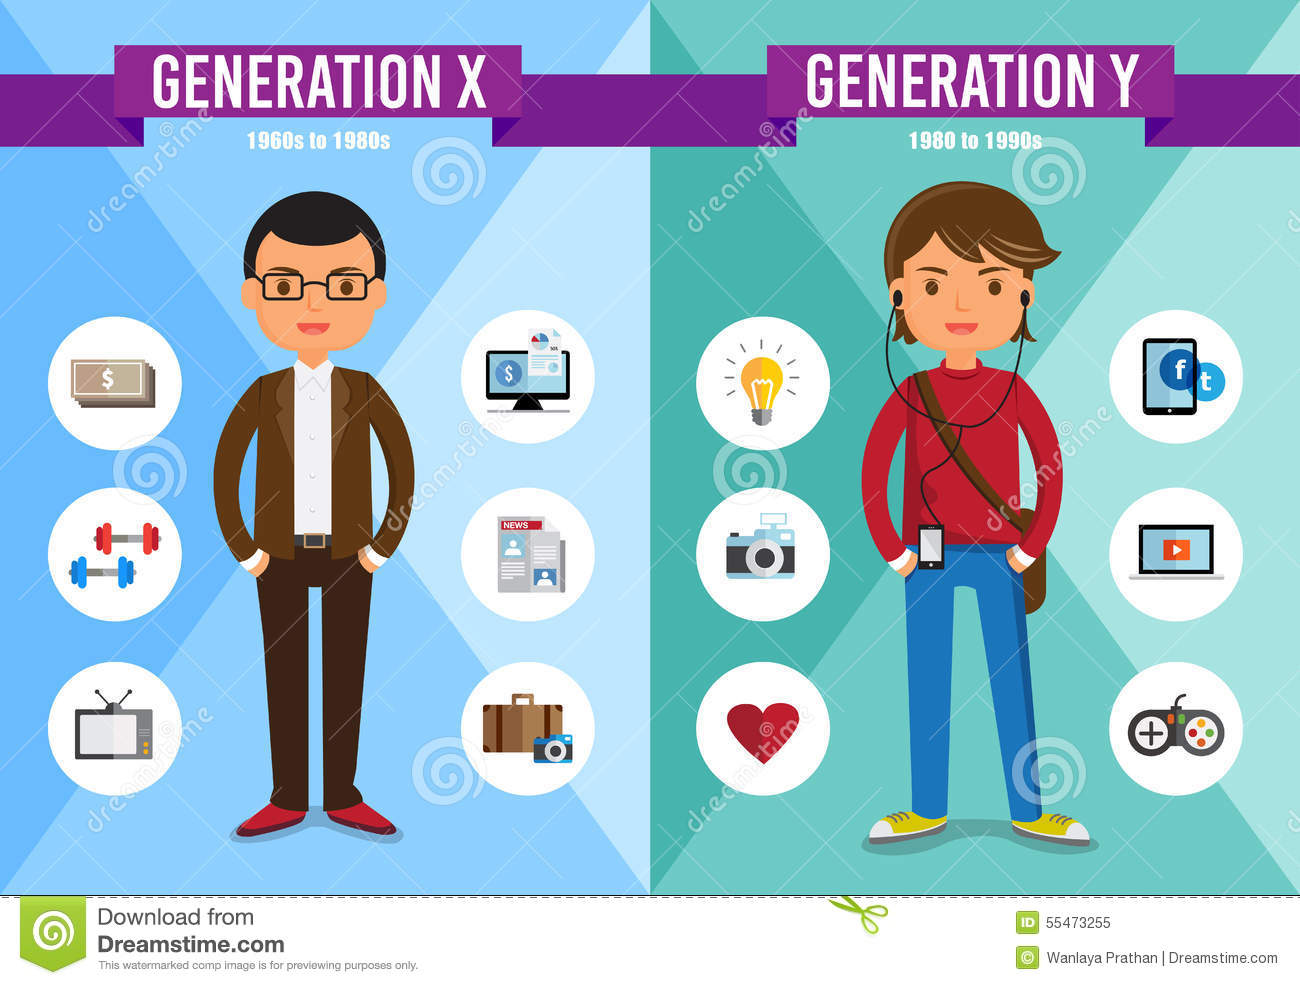 motivators of generation y